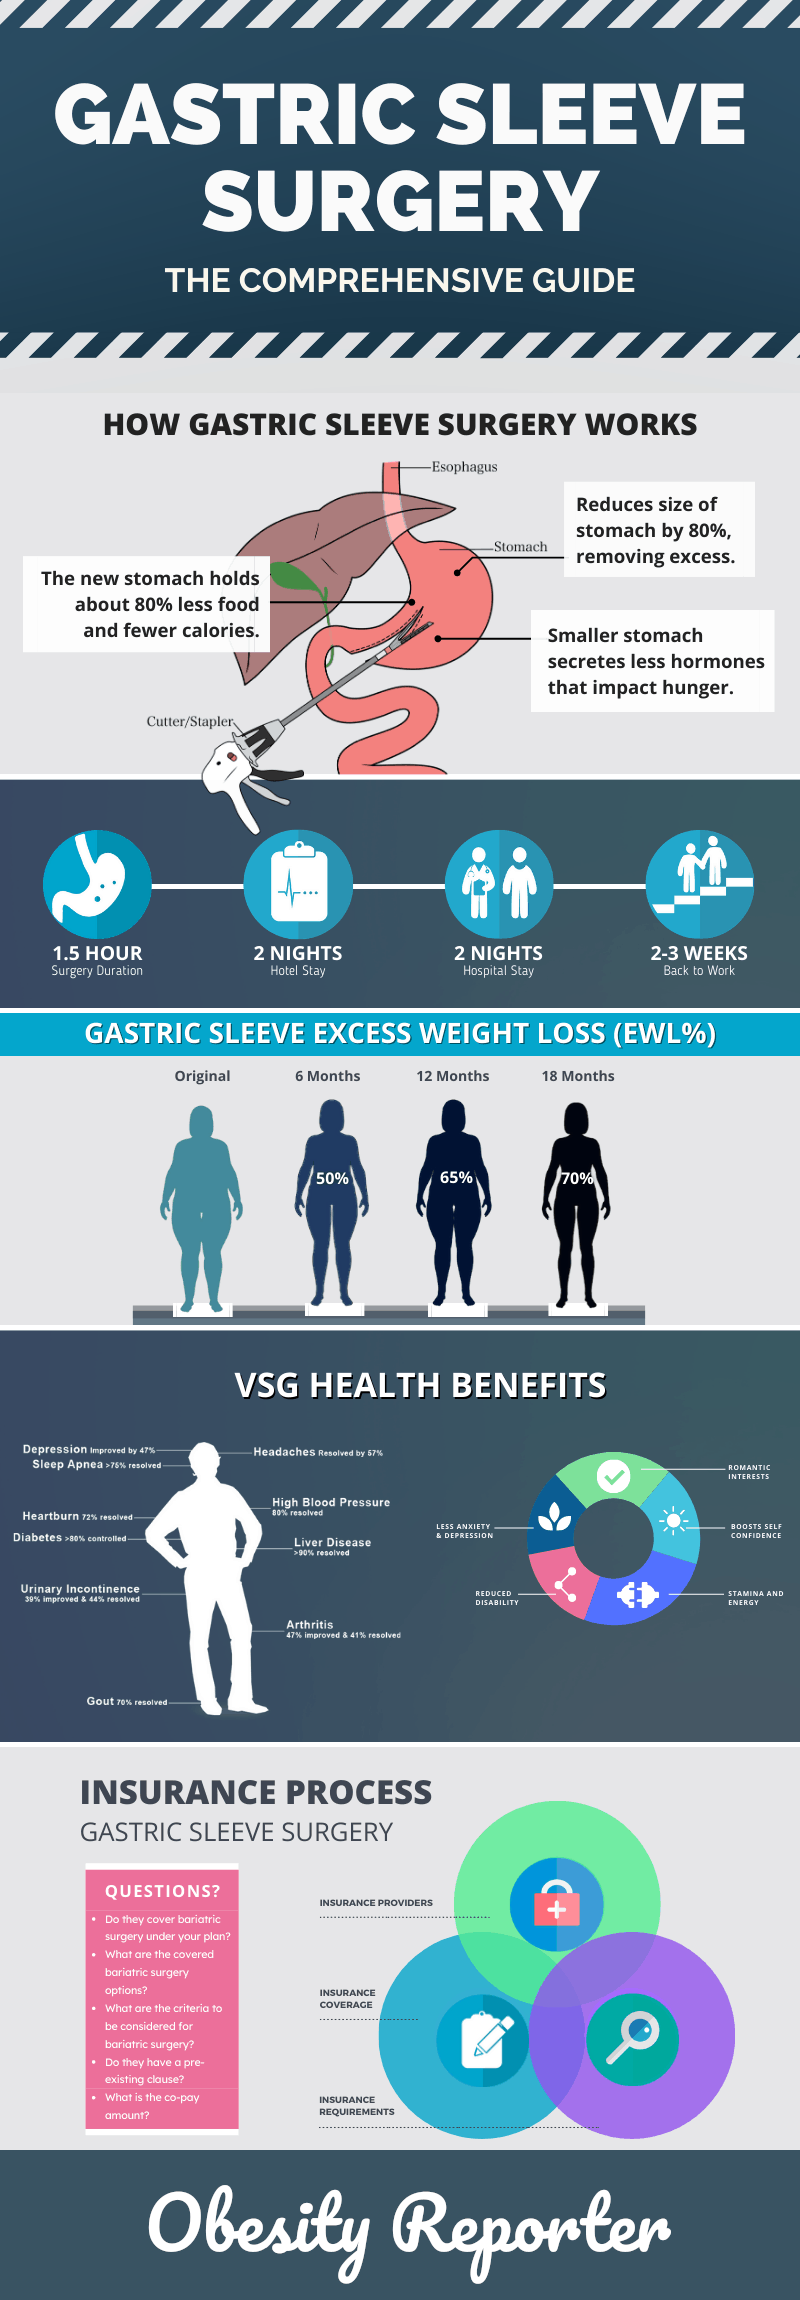 The Comprehensive Gastric Sleeve Surgery Guide (Vertical Sleeve Gastrectomy)